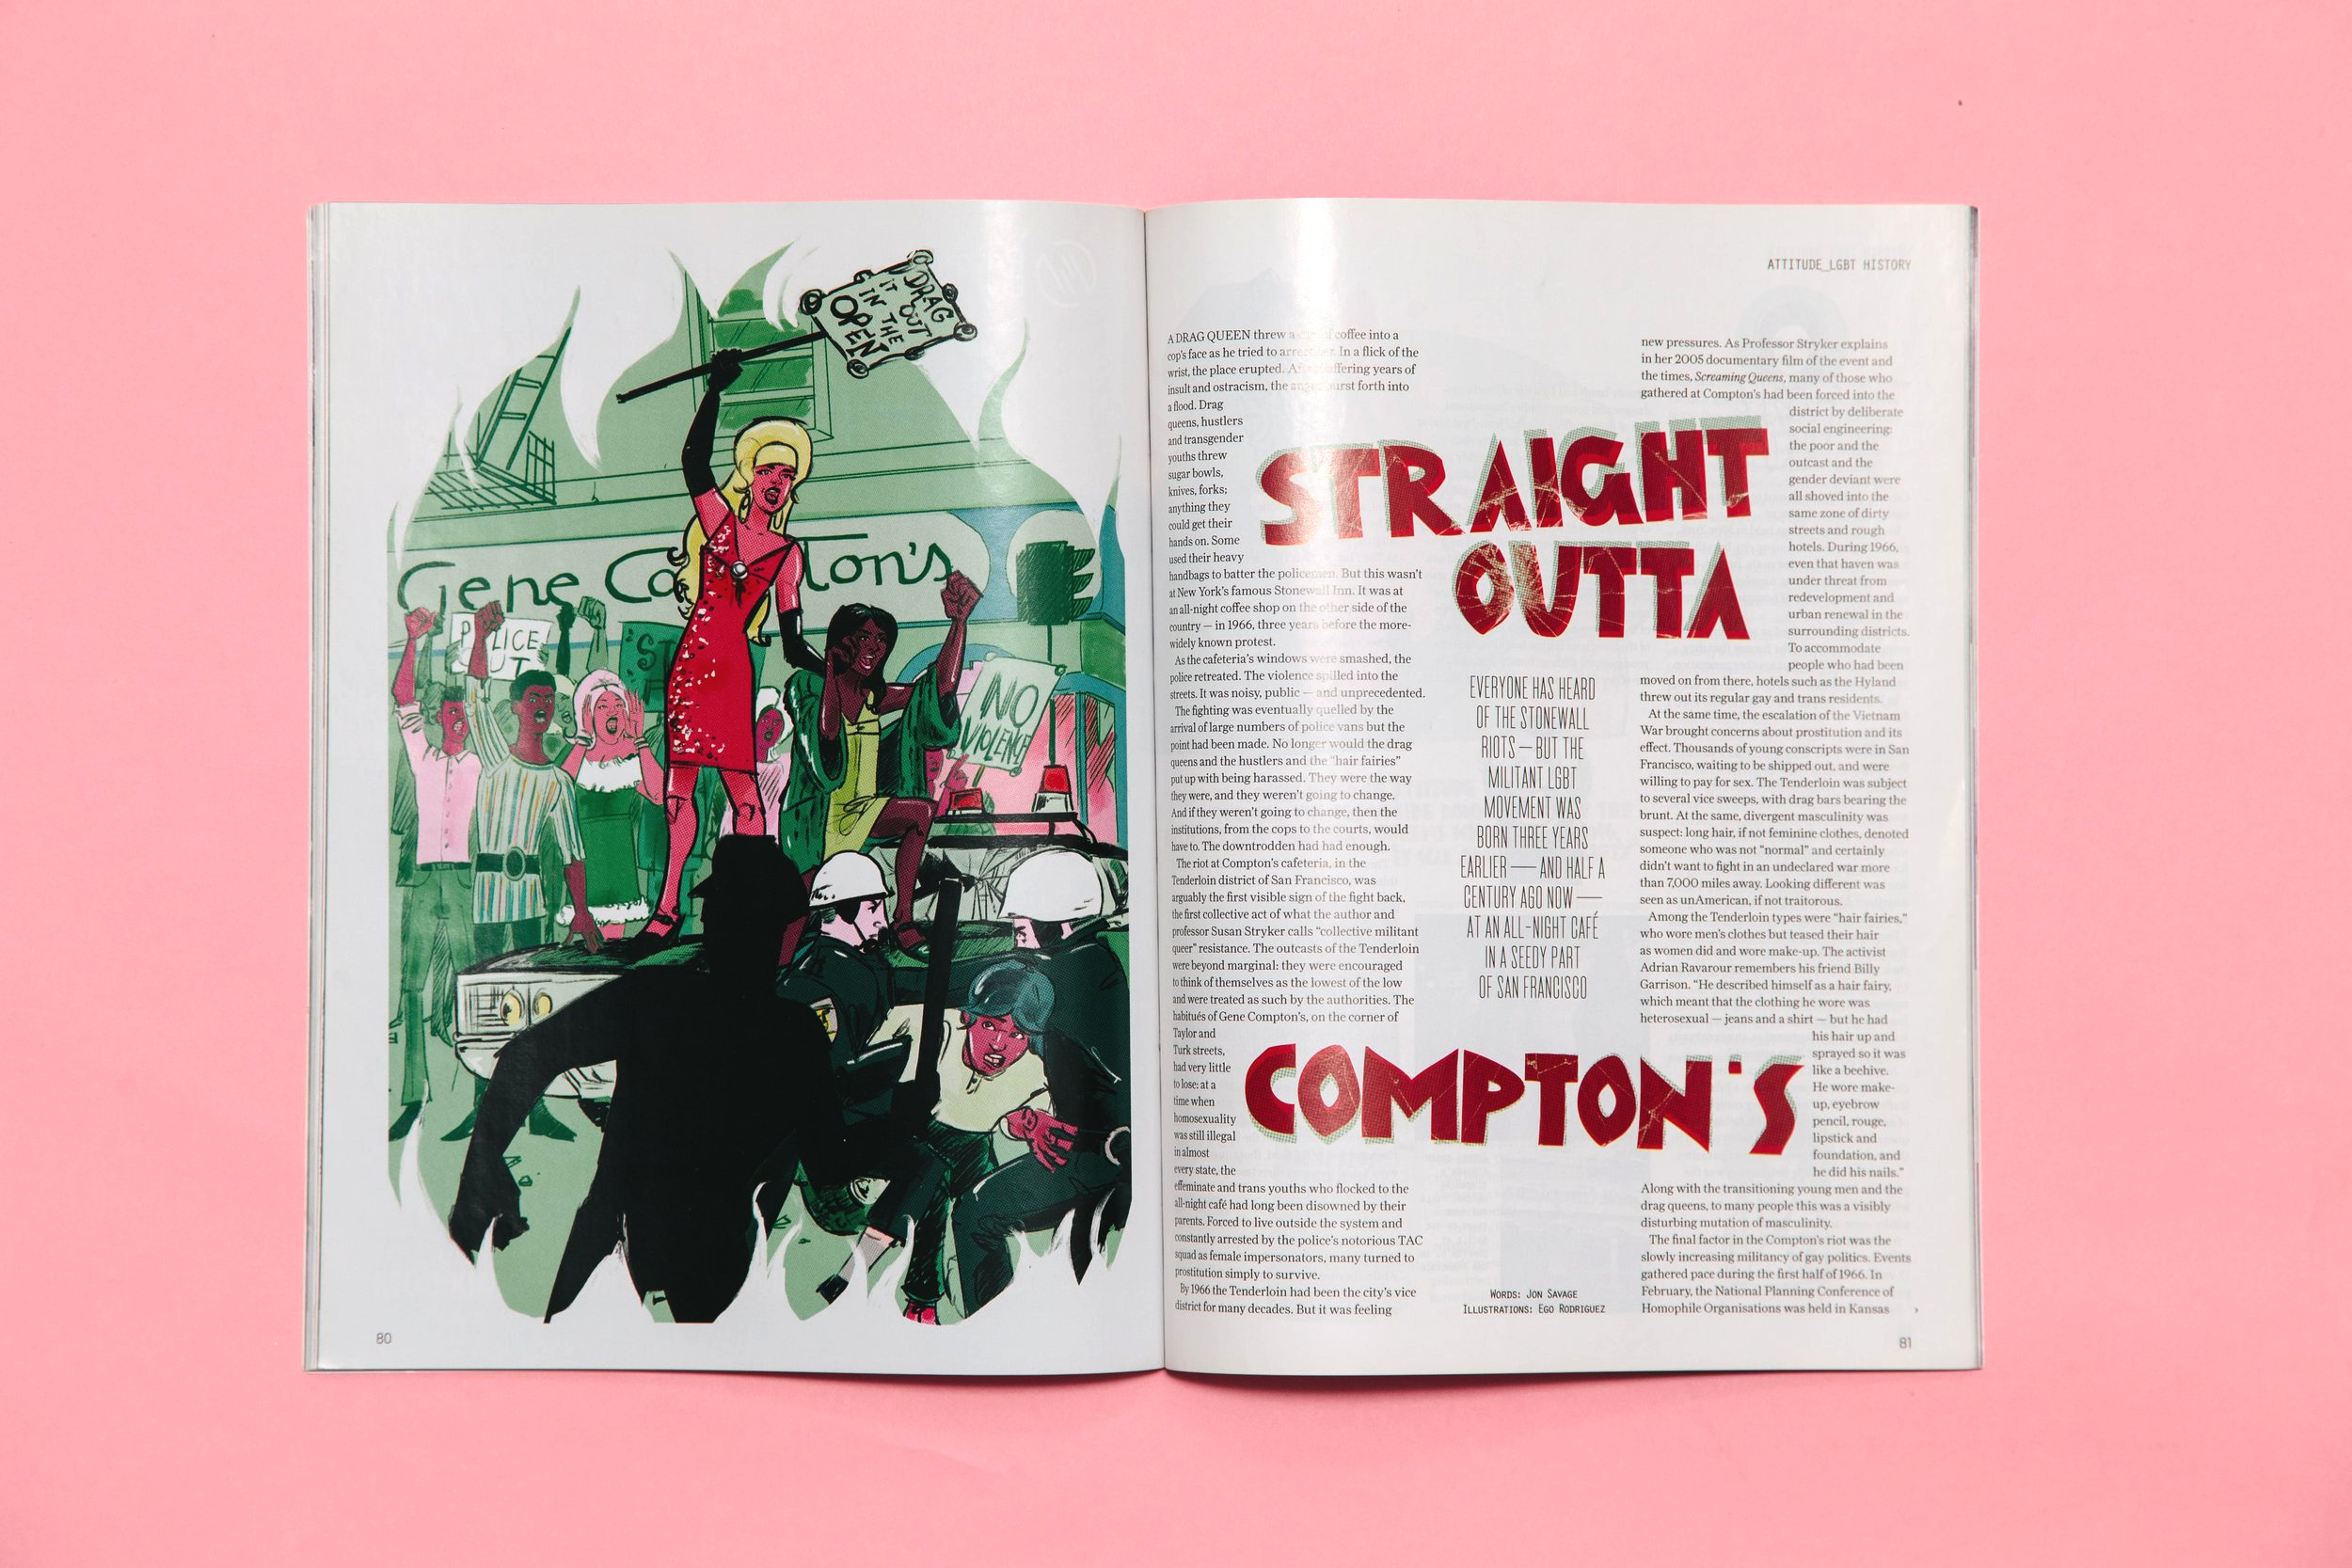 STRAIGHT OUTTA COMPTON'S - FULL PAGE AND THUMBNAILS